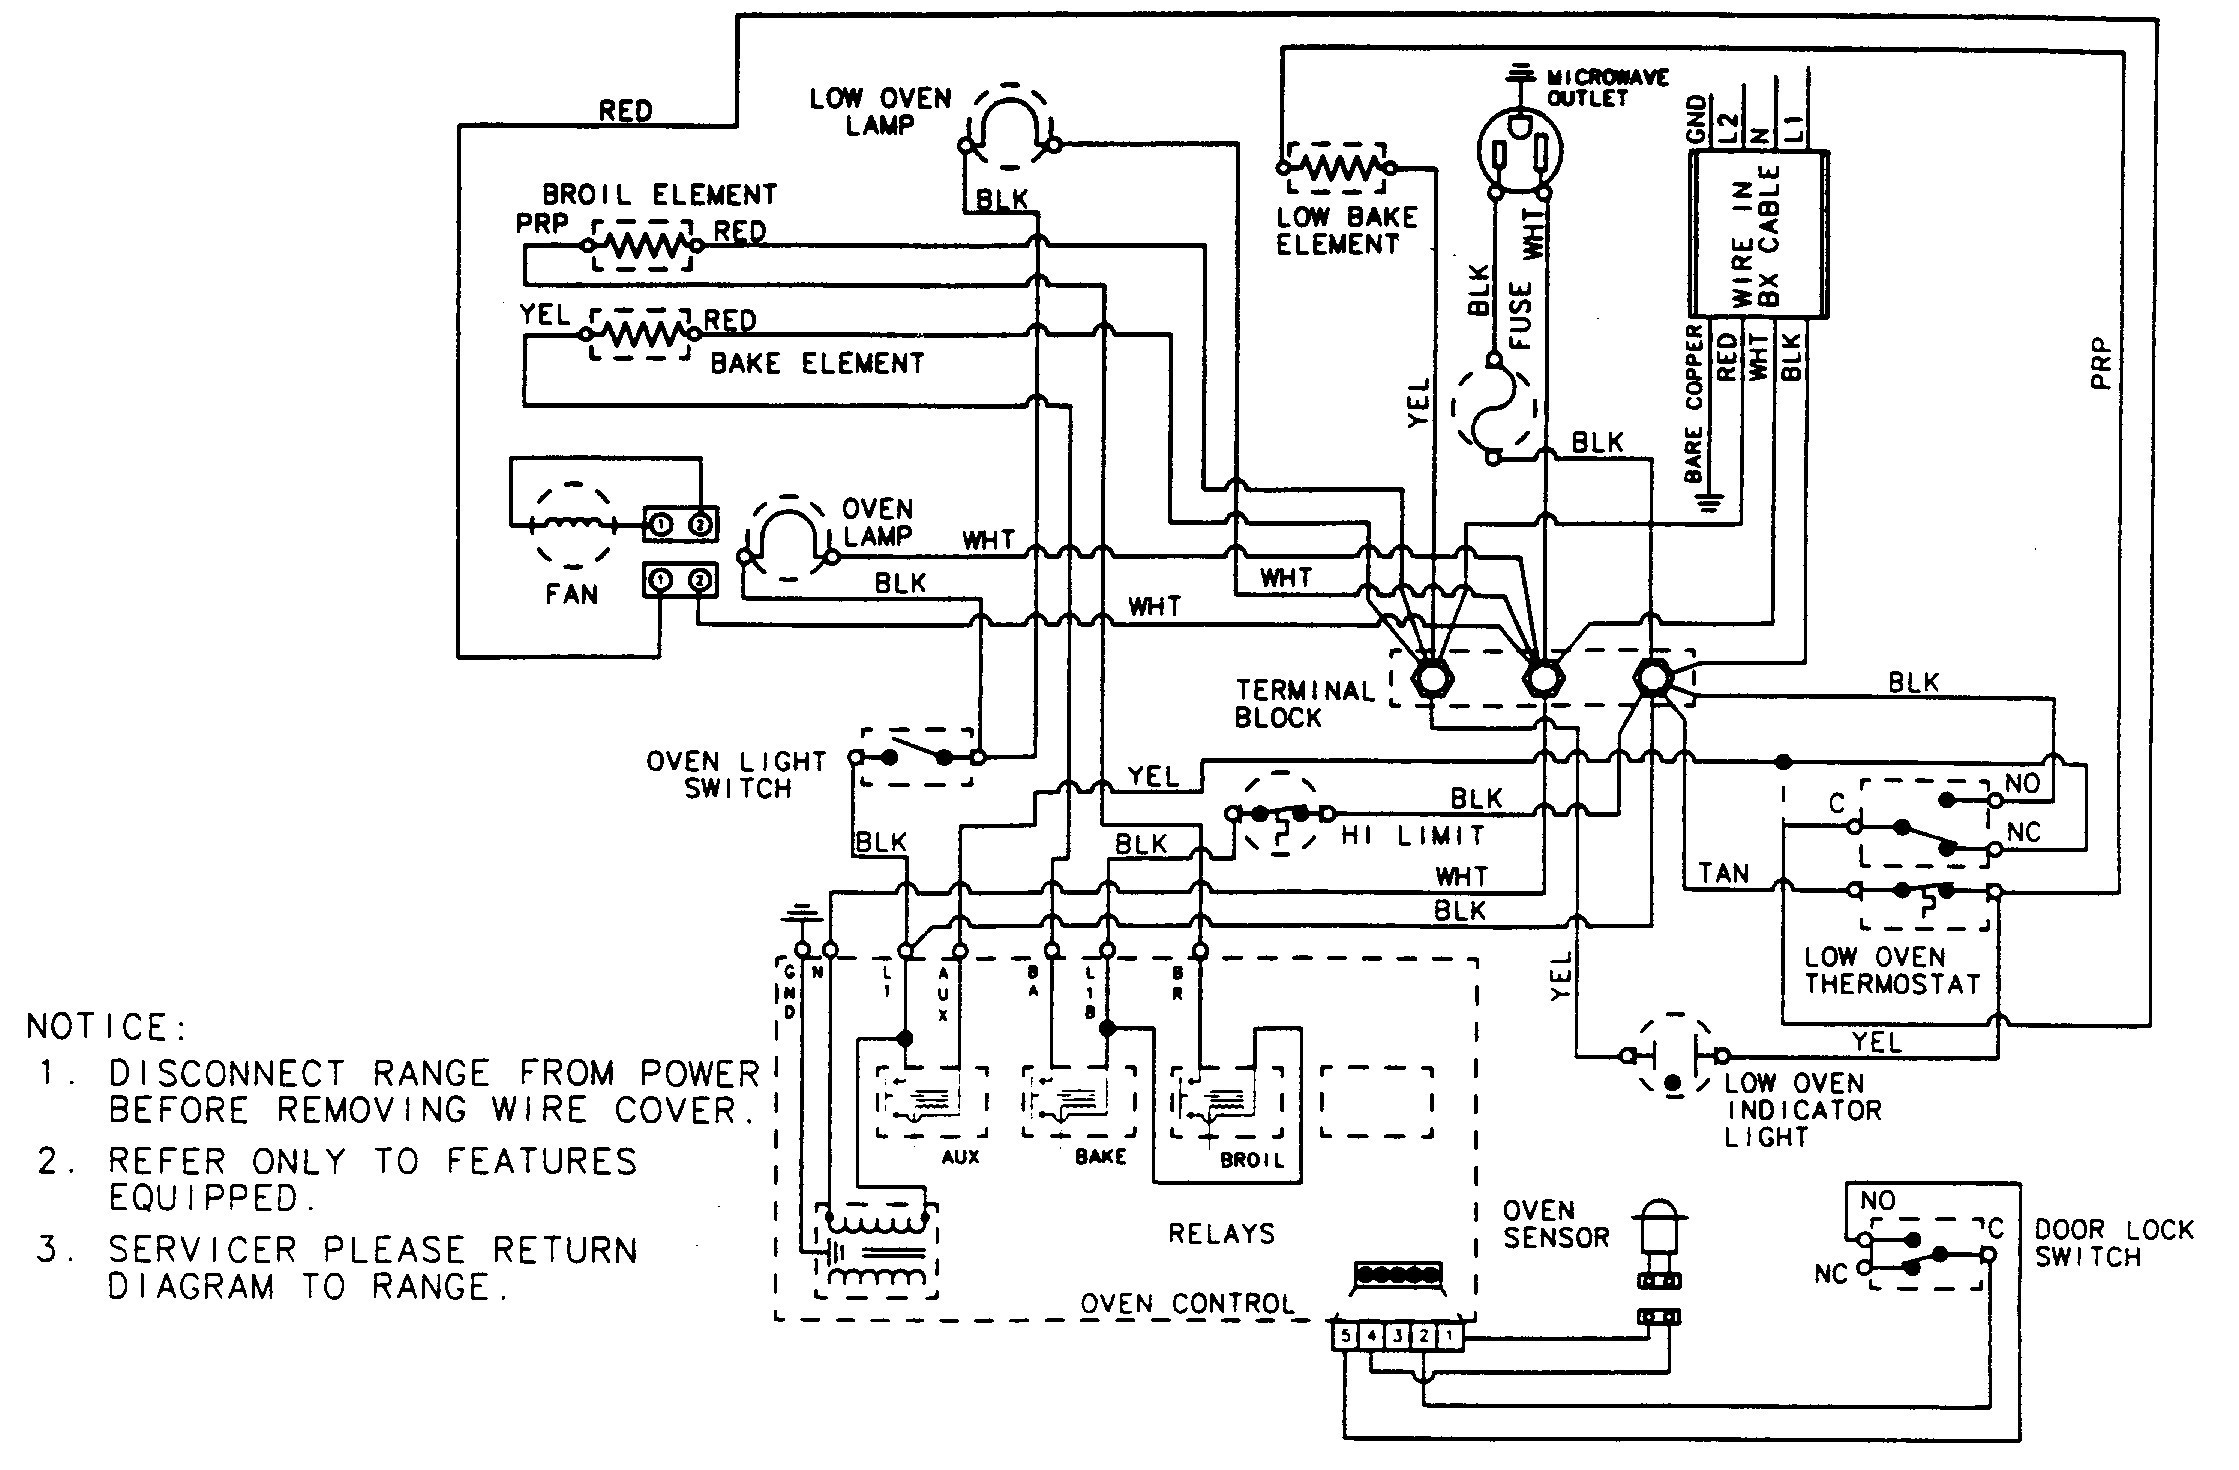 1960 westinghouse wall ovens wiring diagram best wiring library Wall Oven Plug 1960 westinghouse wall ovens wiring diagram auto electrical wiring wiring diagram for whirlpool double ovens 1960